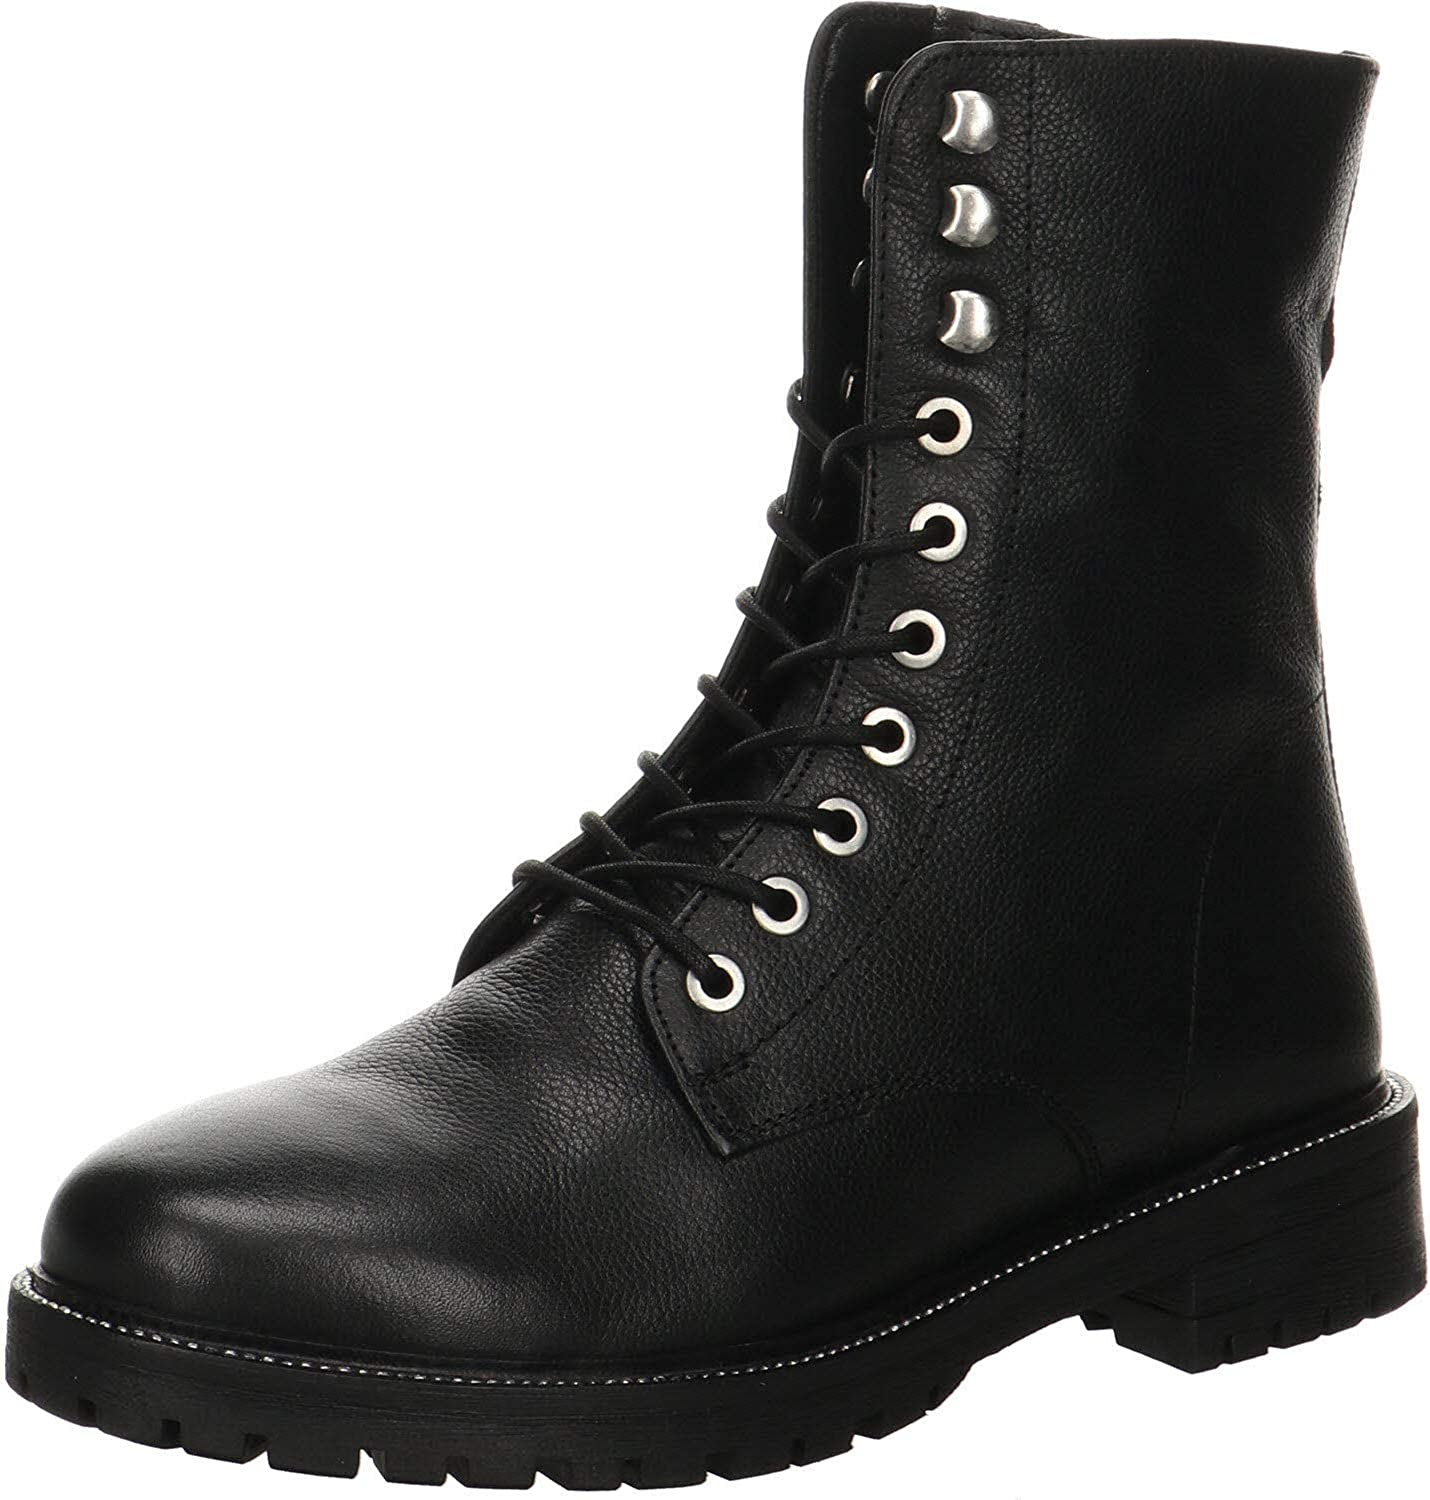 Kim Kay Women's Boots Black